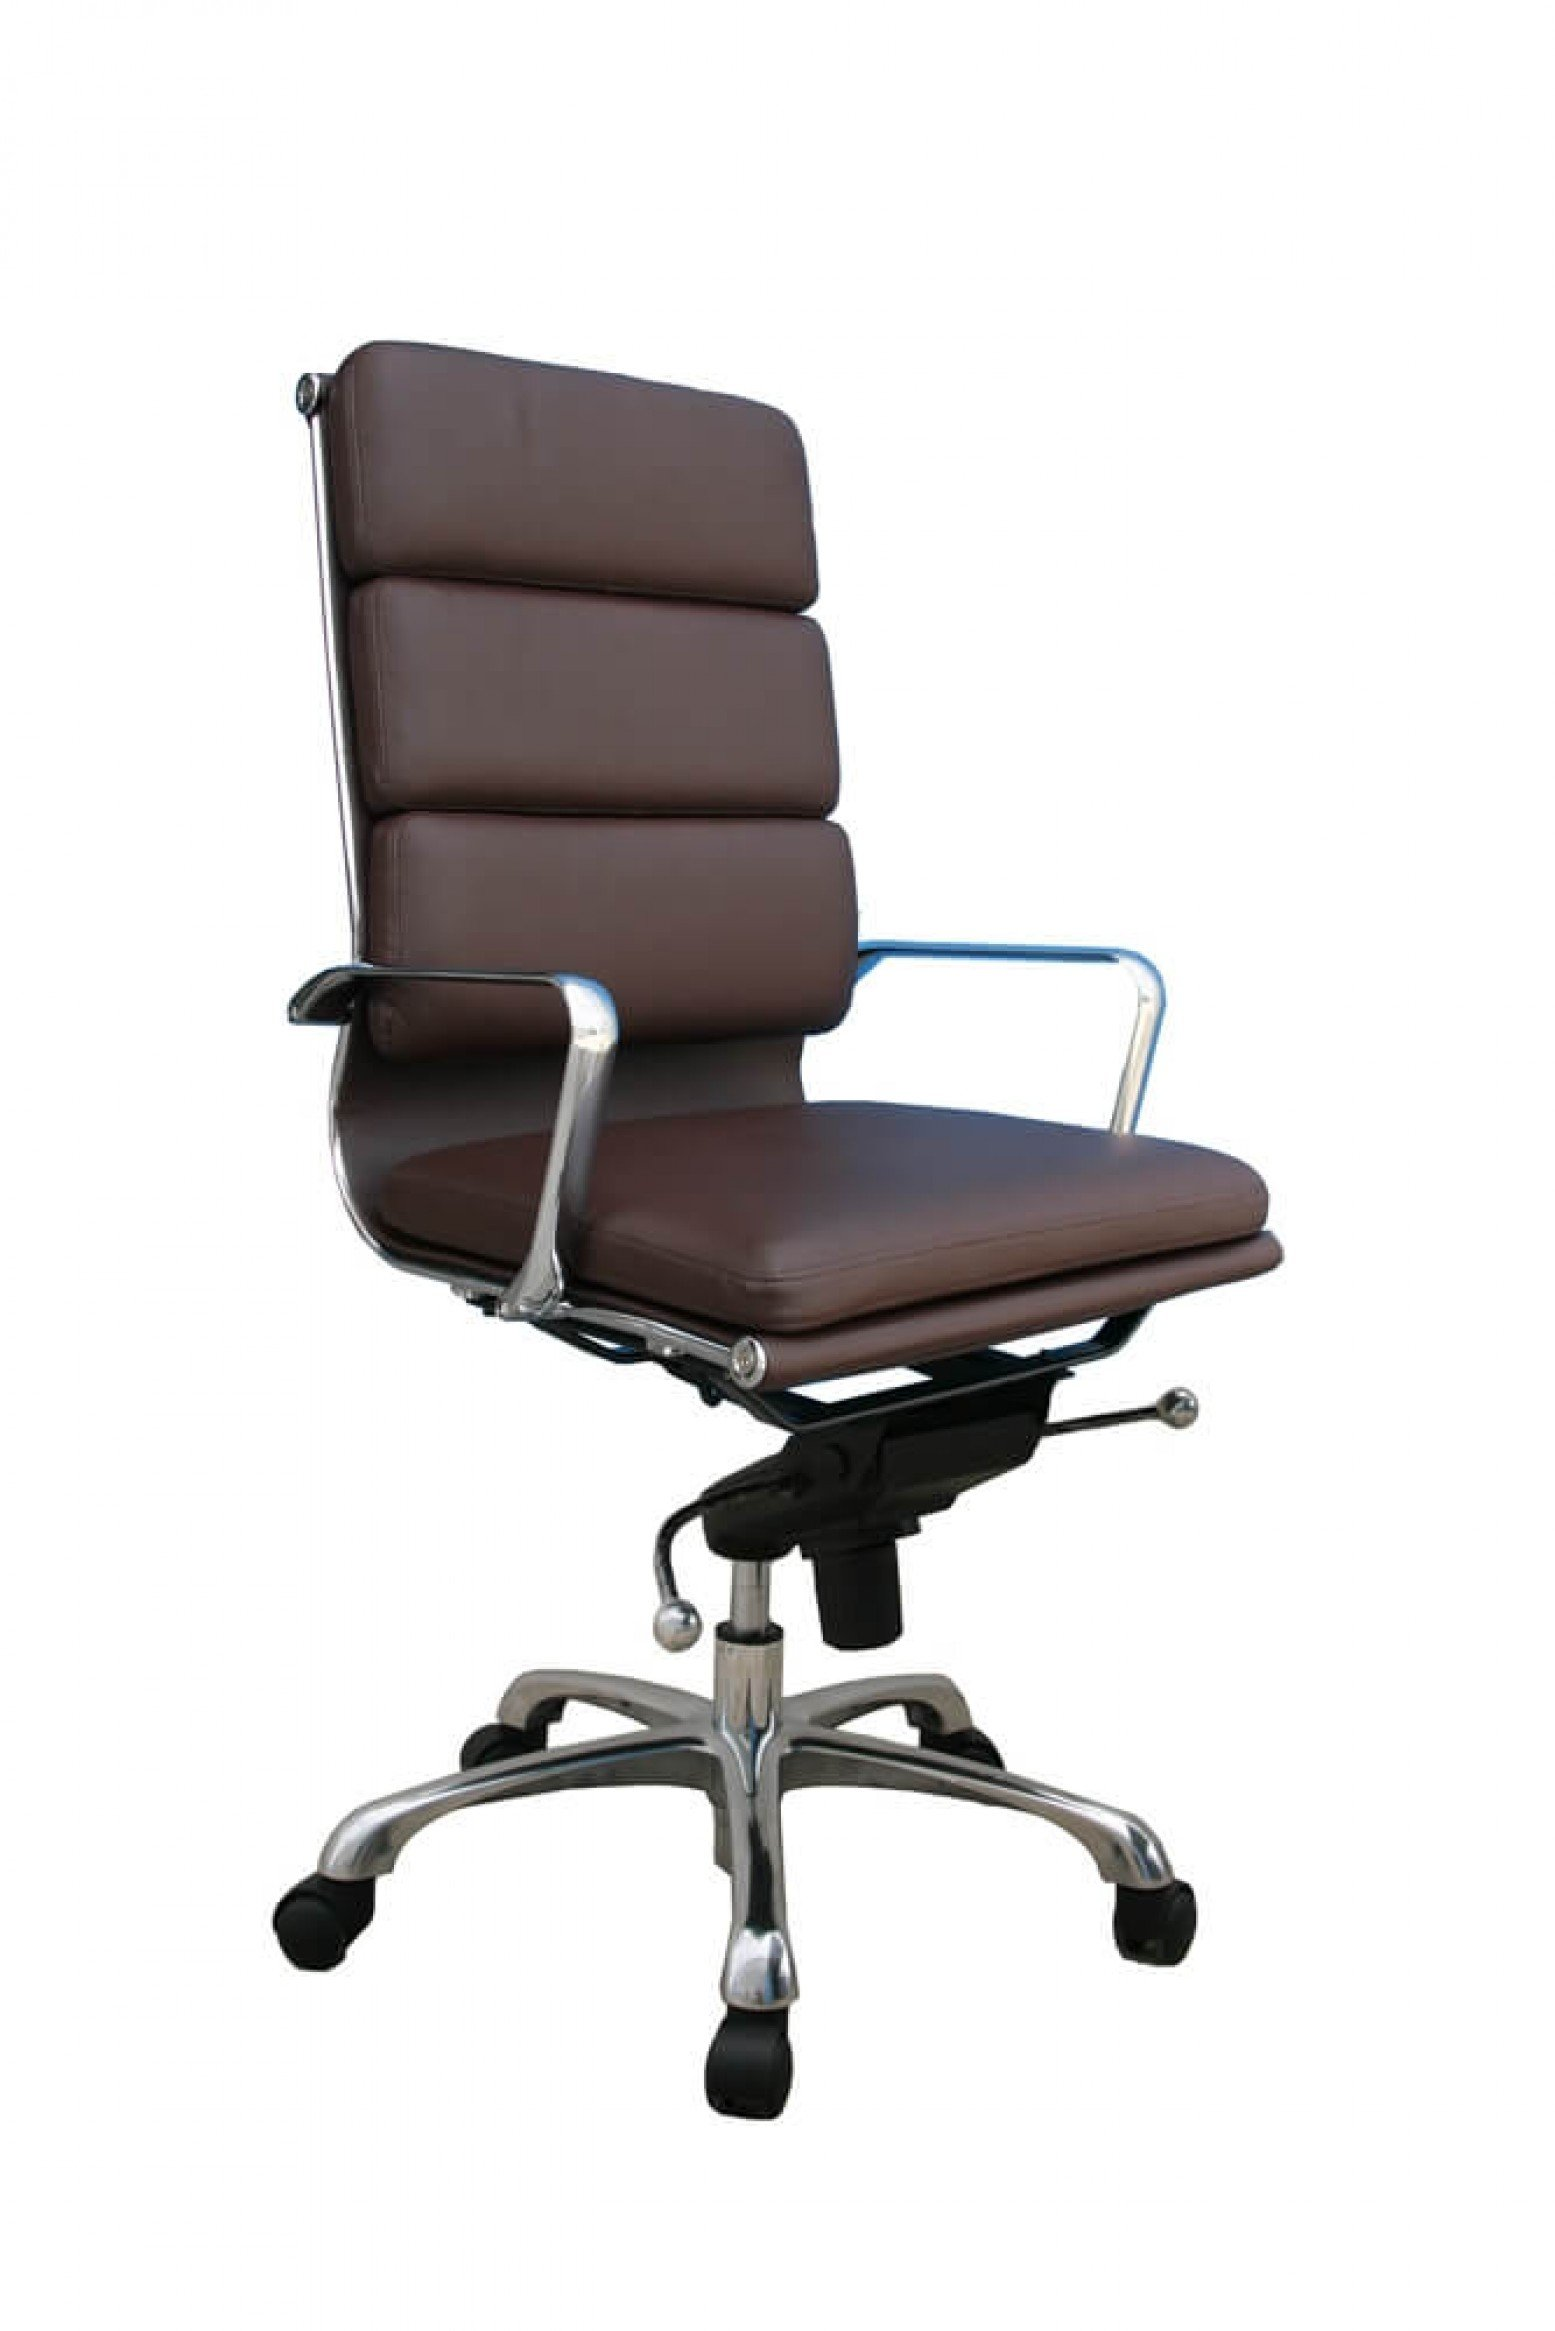 Plush High Back Adjustable Swivel Office Chair by JM